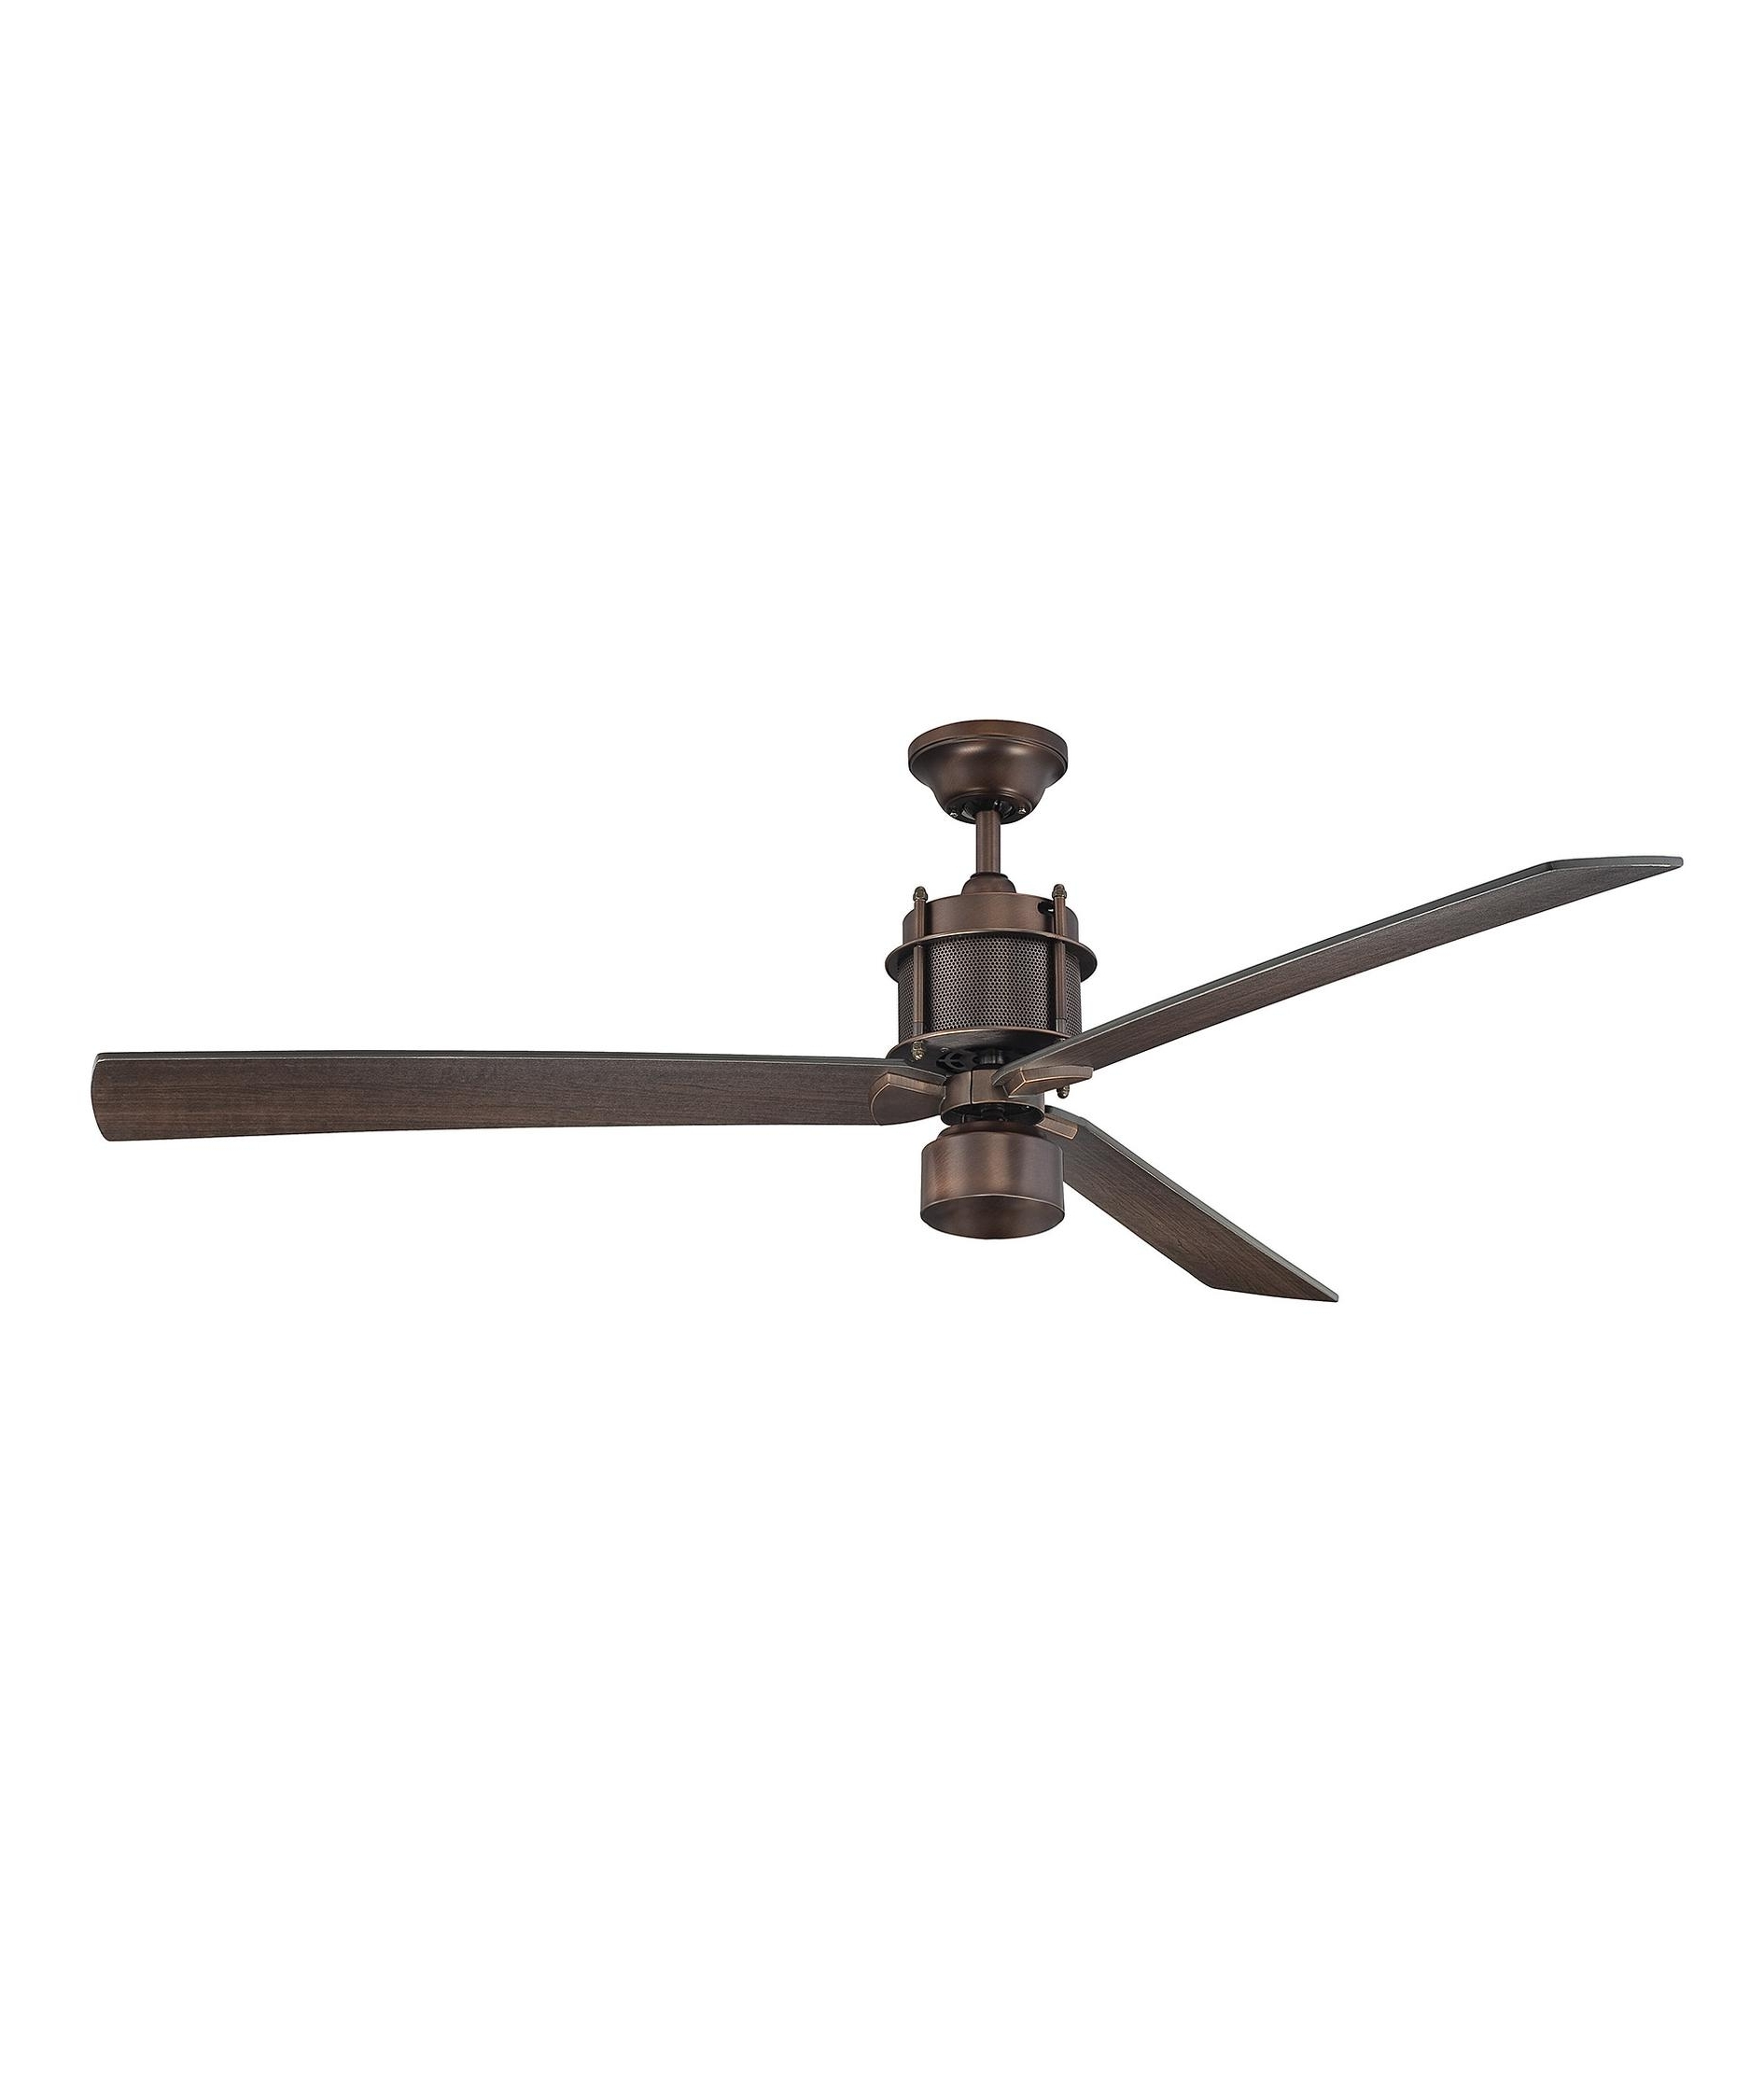 Outdoor Ceiling Fans Without Light Kit (View 19 of 20)